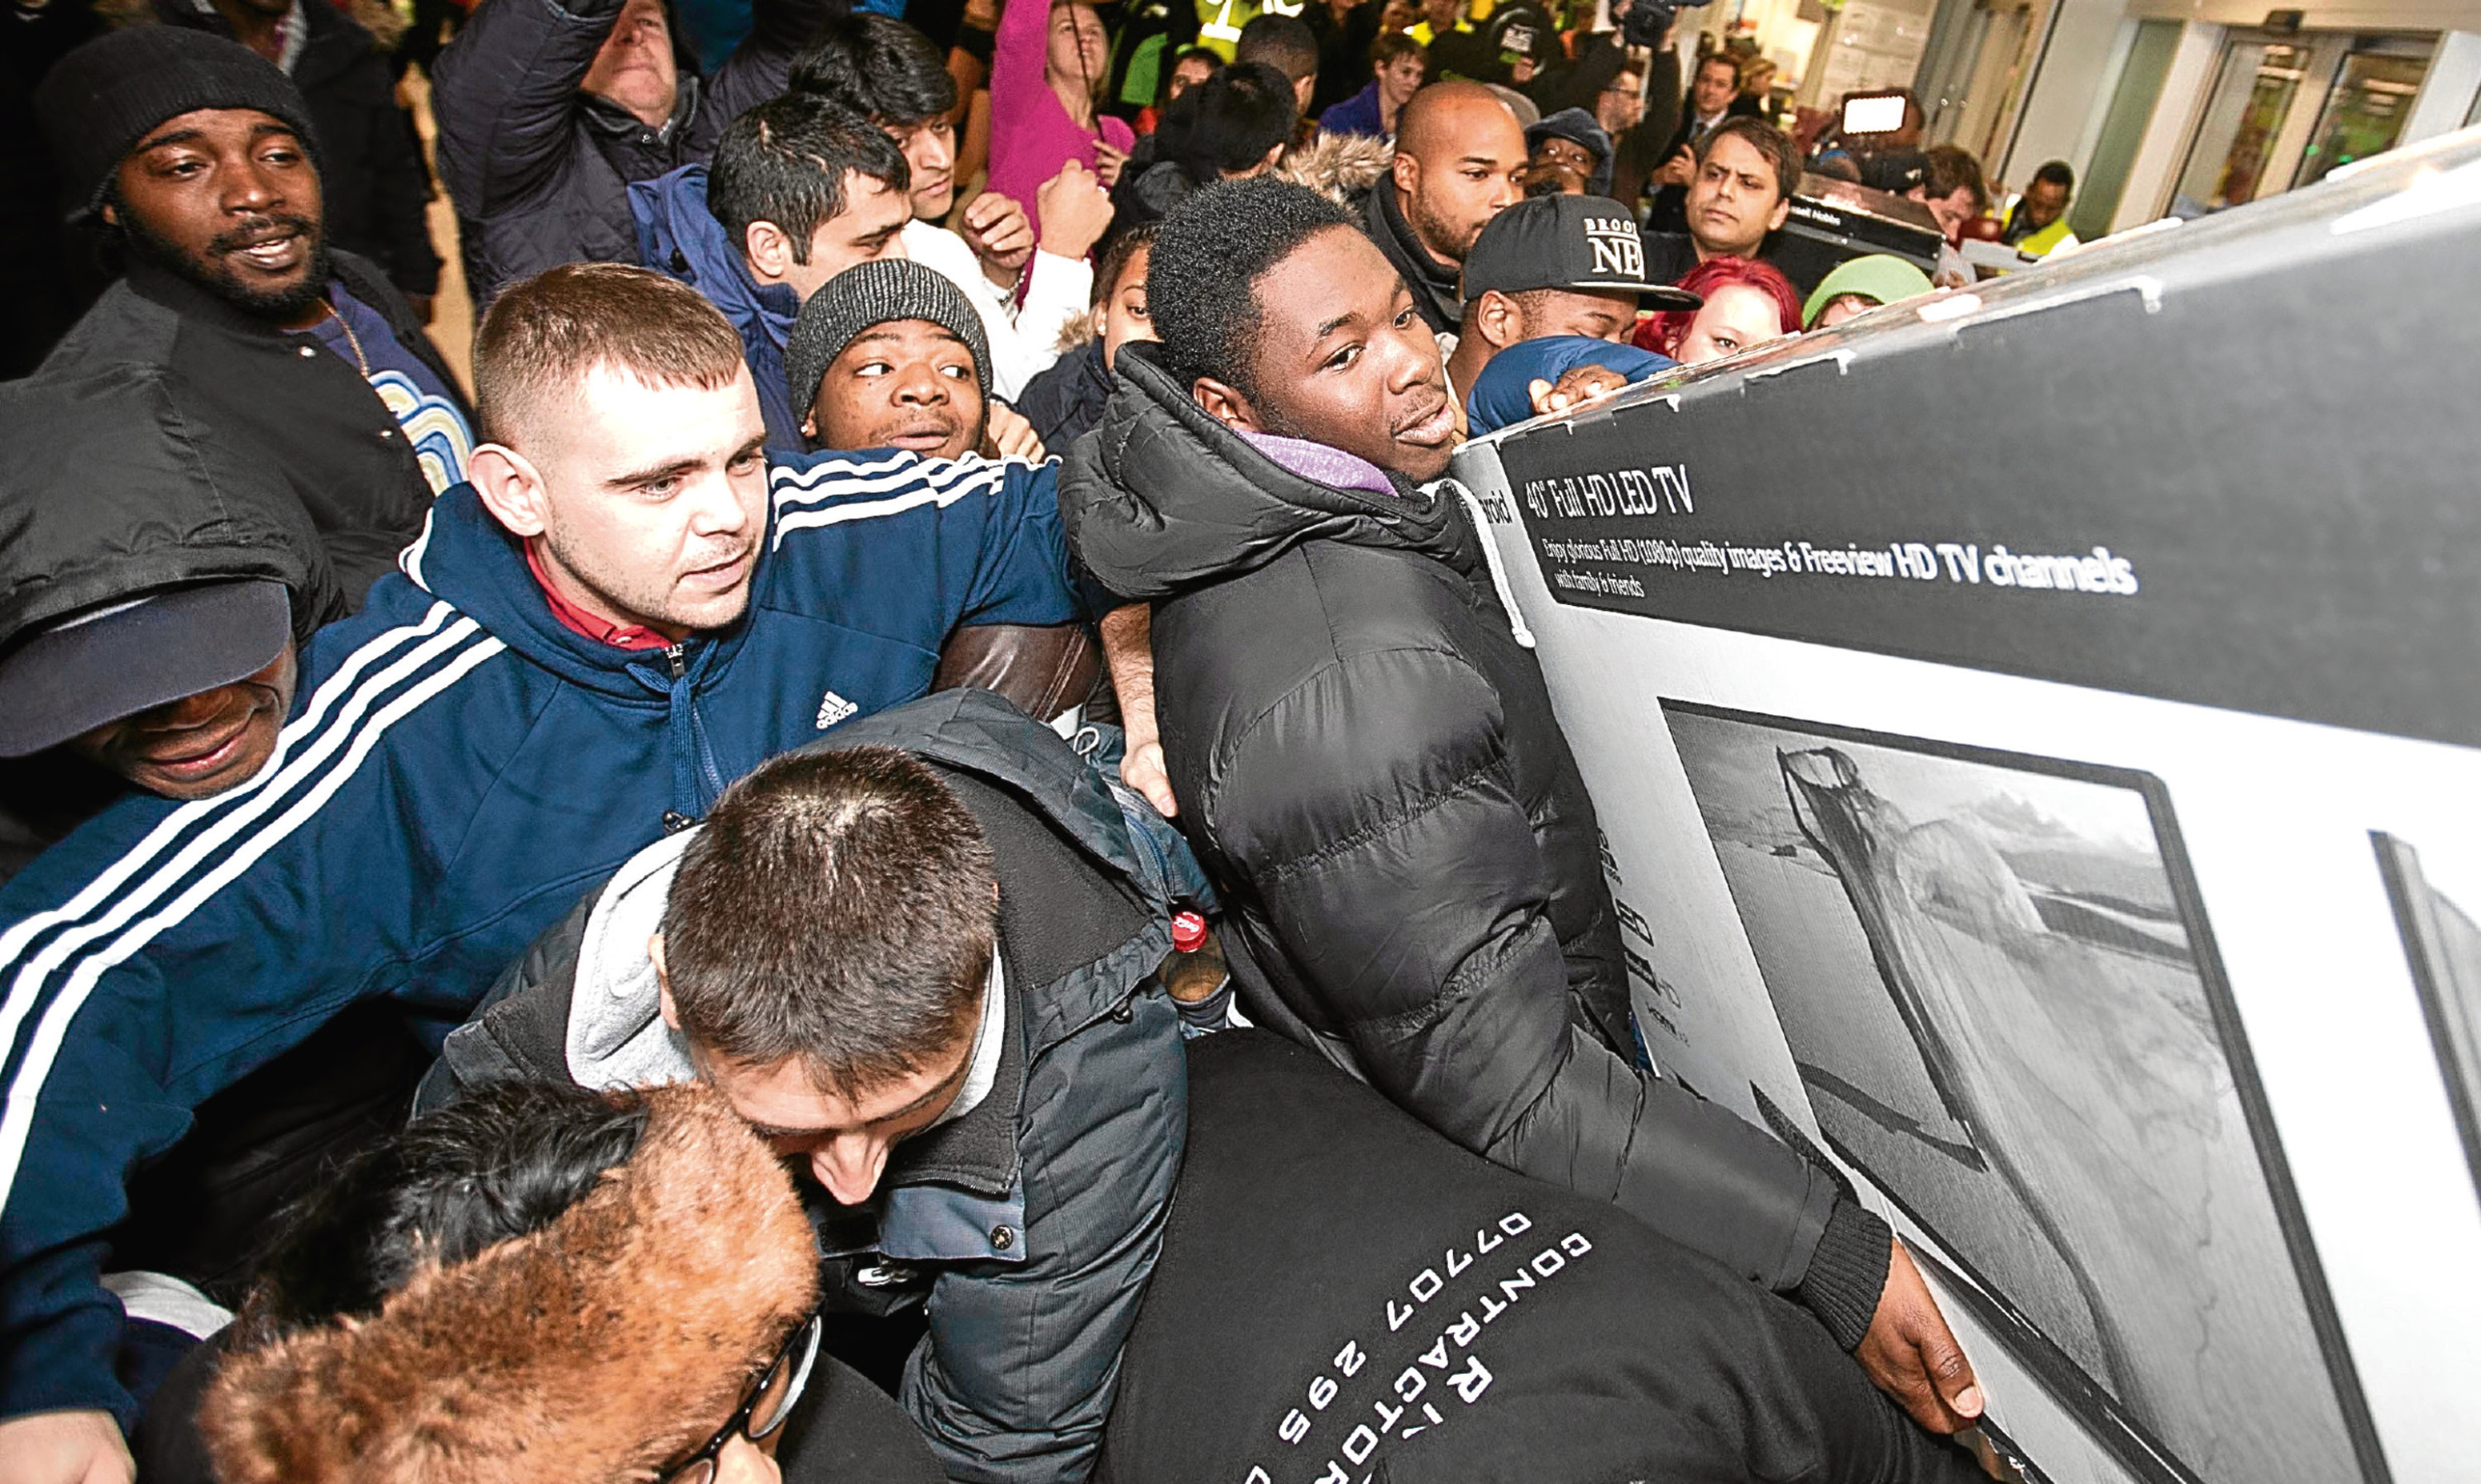 Scuffles broke out in UK stores as customers fought for Black Friday bargains in 2014